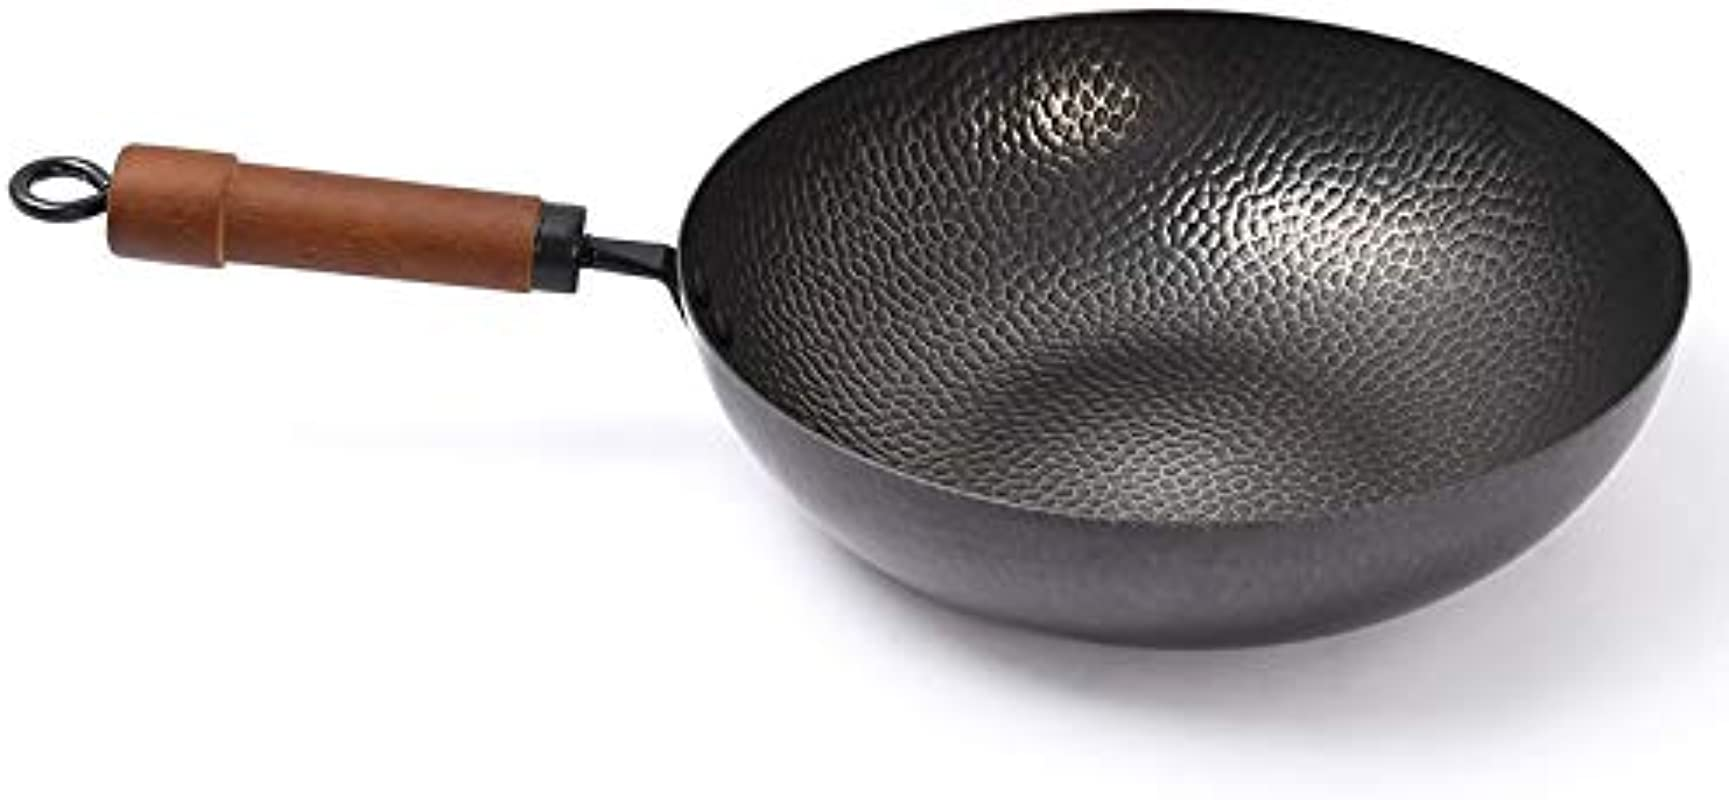 12inch High Purity Iron Hand Forged Wok Uncoated Iron Wok Flat Bottom Pan Household Kitchen Cookware With Log Lid No Fumes Non Stick Pan